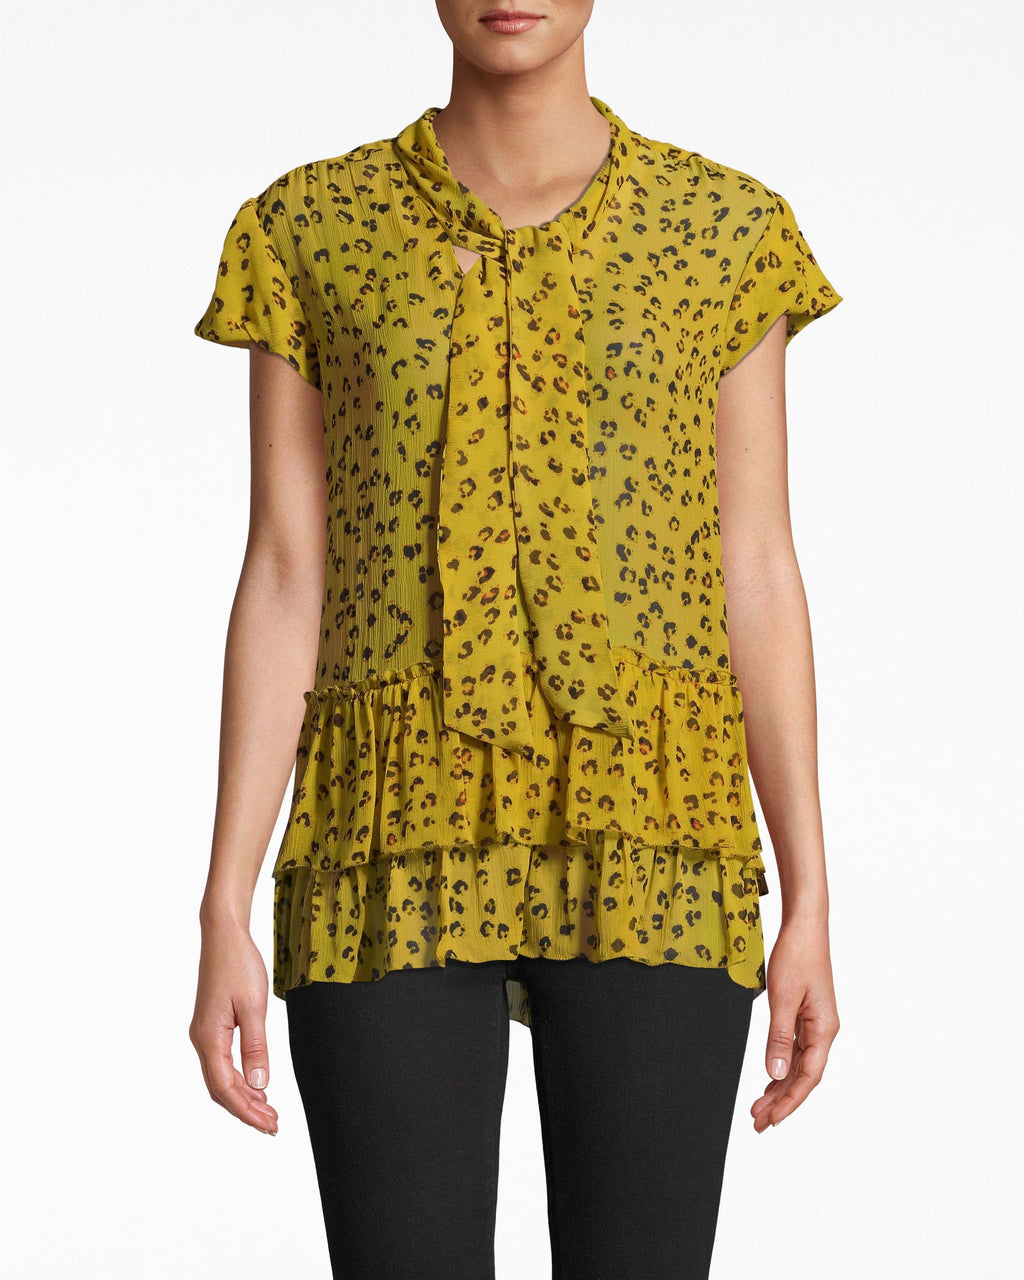 BE10405 - DITSY LEOPARD RUFFLE TIE BLOUSE - tops - blouses - THIS WEAR ANYWHERE STYLE HAS A FEMININE TIE FRONT AND RUFFLE HEMLINE. DESIGNED IN LEOPARD PRINT IN LIGHTWEIGHT SILK. Add 1 line break STYLIST TIP: WEAR WITH A DENIM SKIRT AND YOUR FAVORITE SHOES.